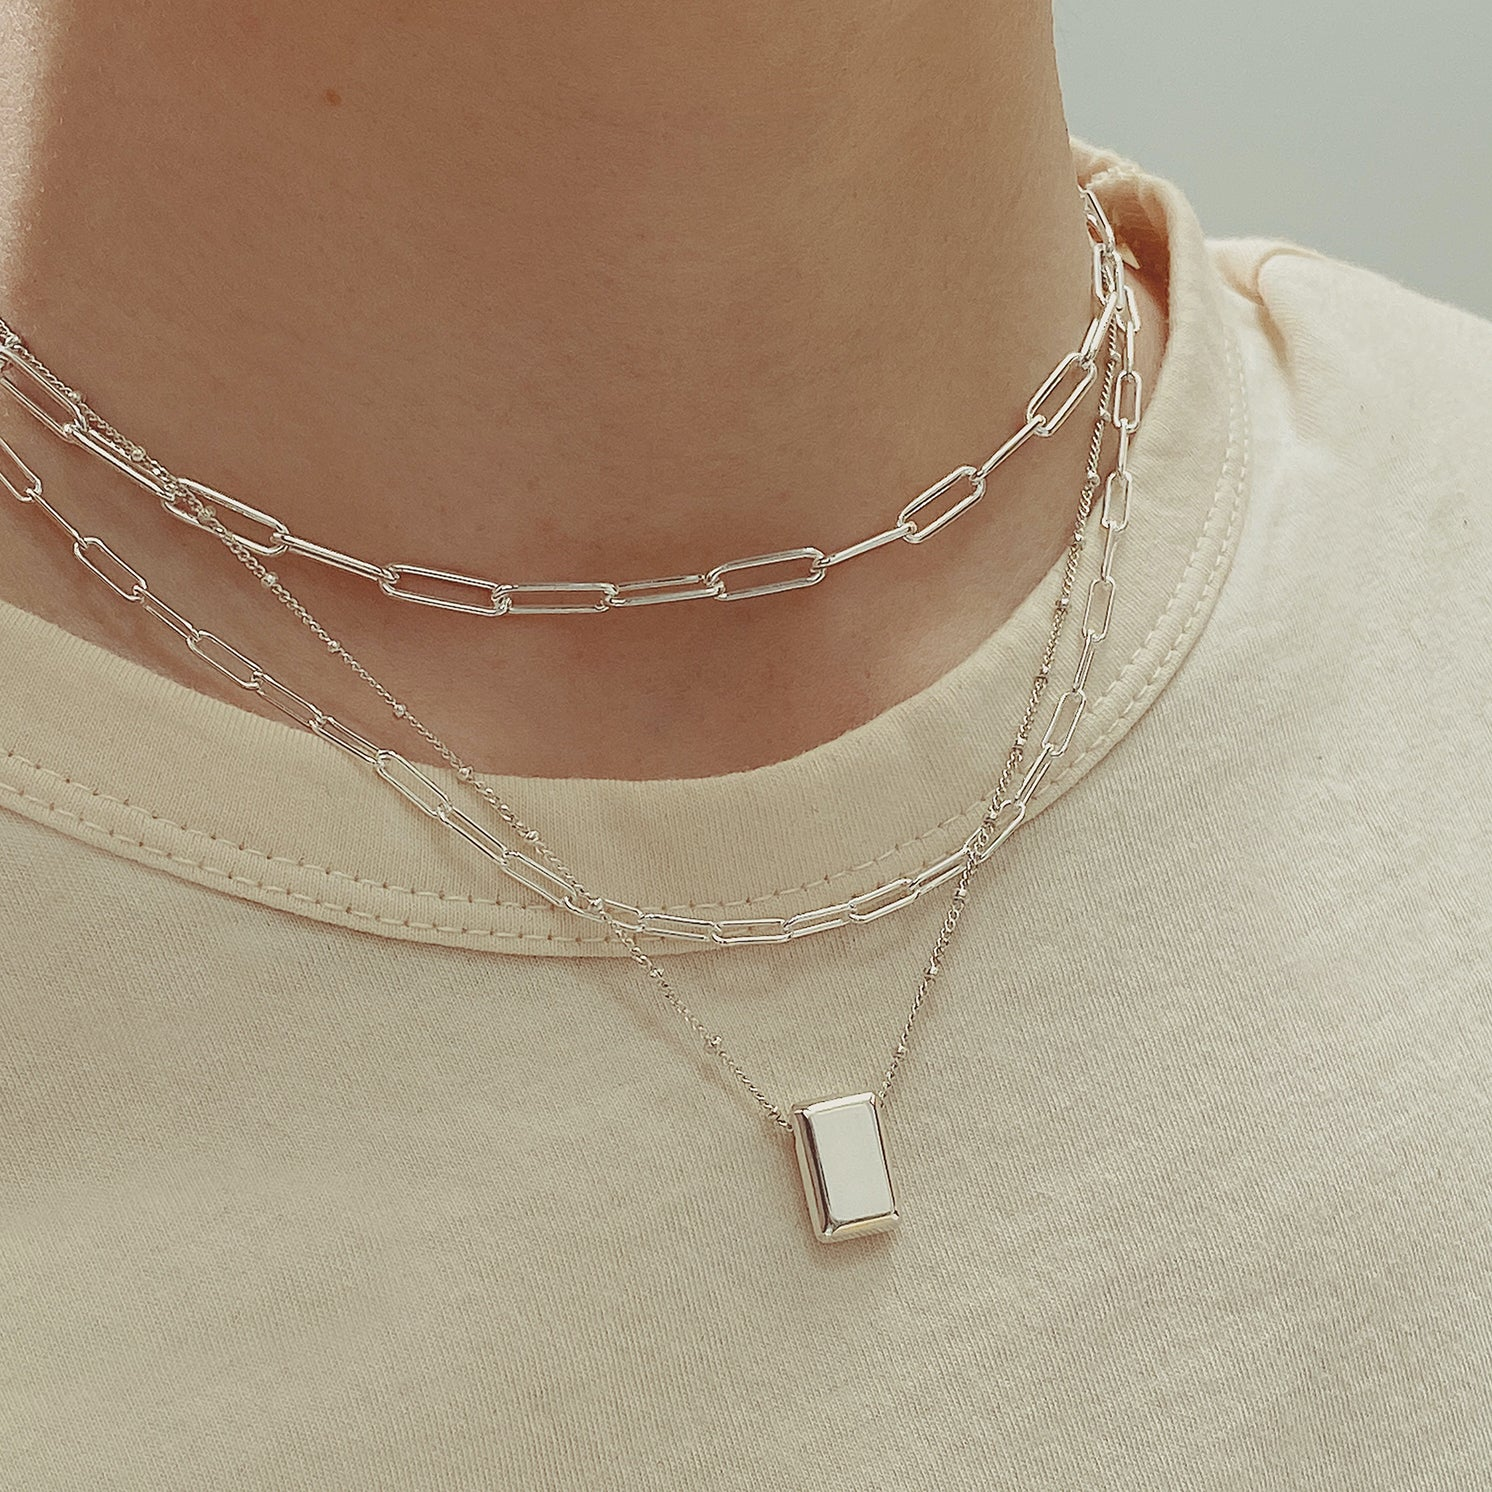 The Paperclip Chain 1.0